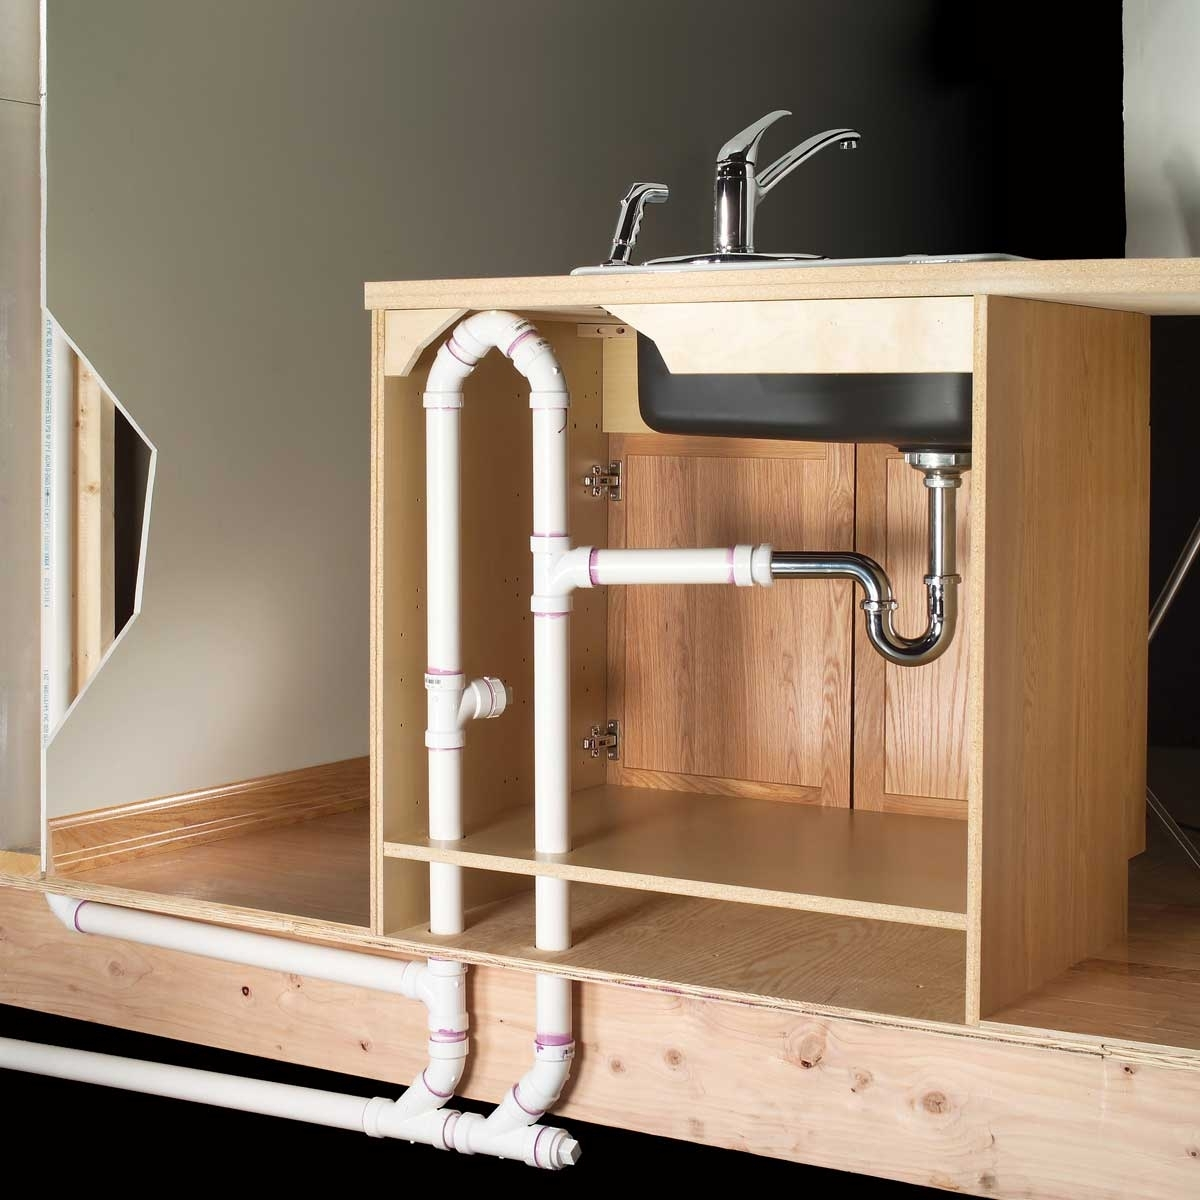 About Kitchen Sink Plumbing Rough In Dimensions 3 Design